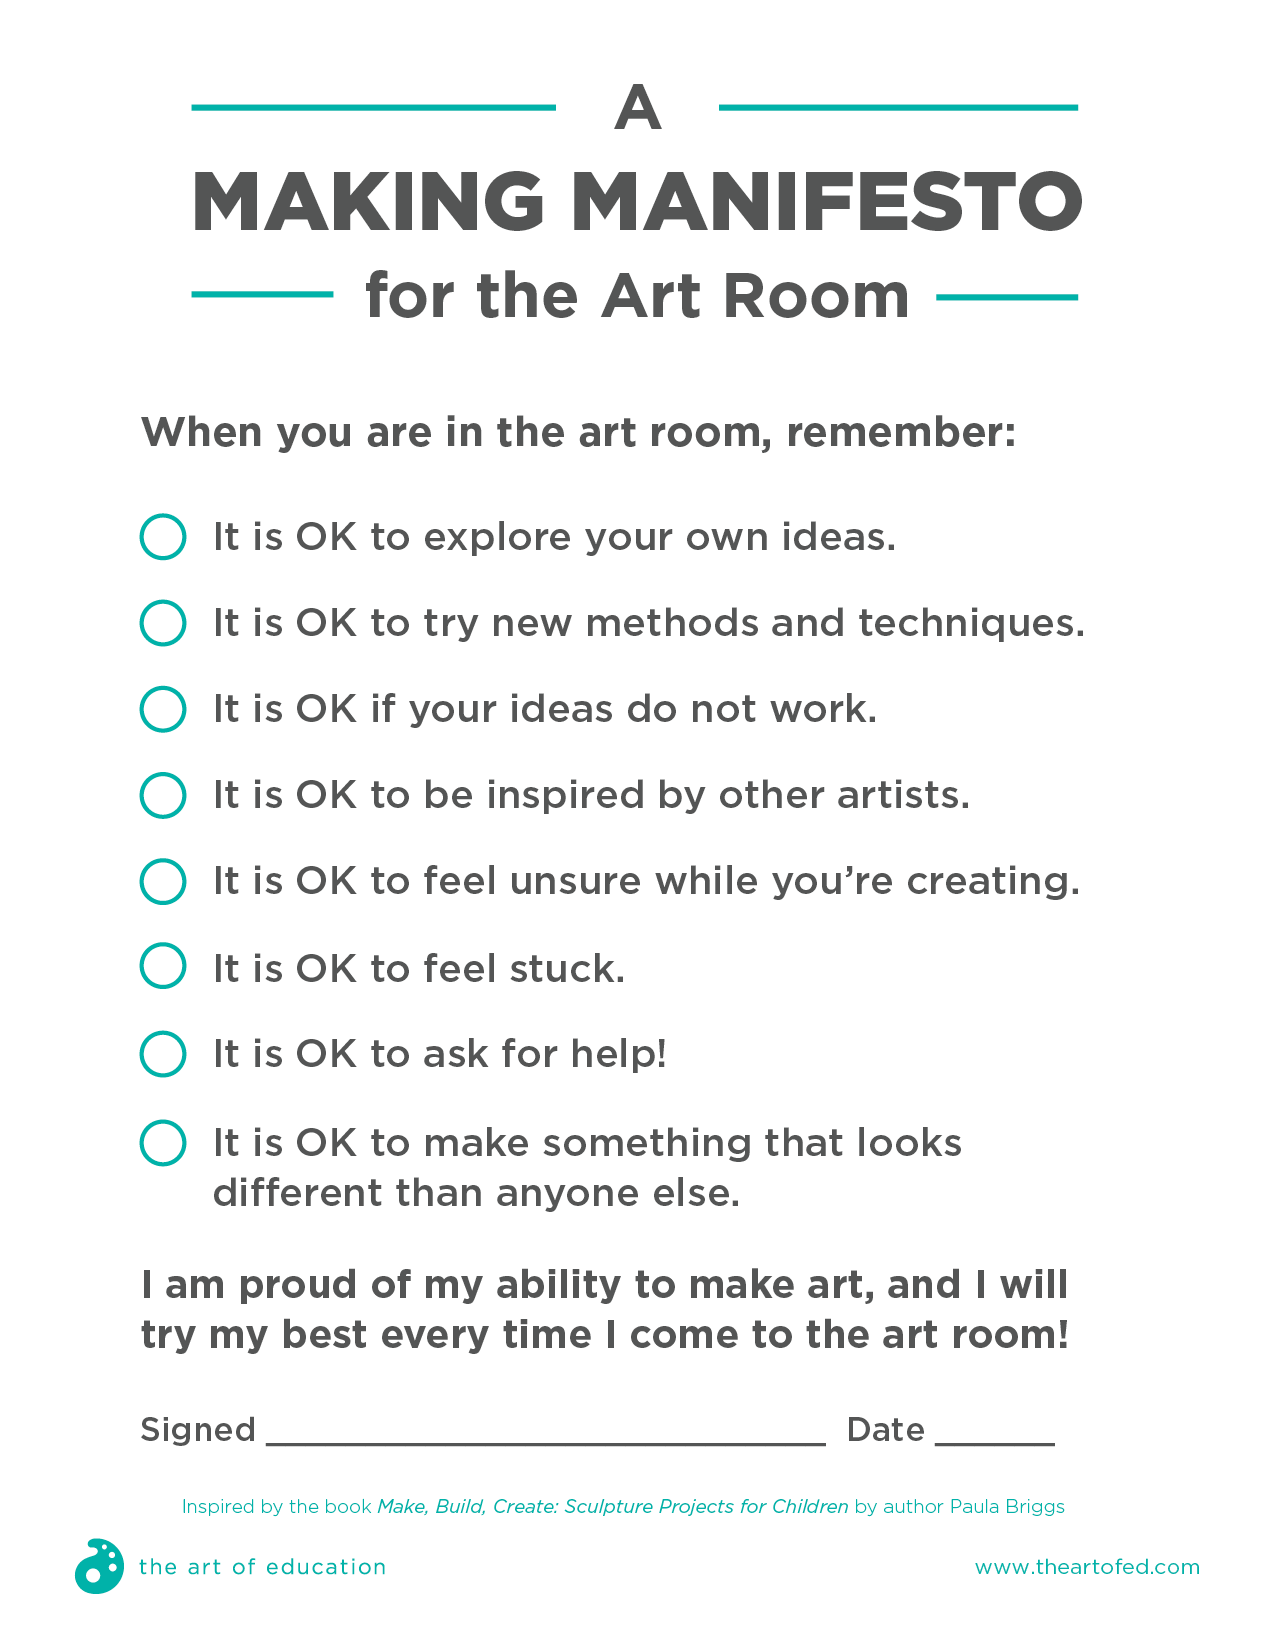 A Making Manifesto To Help Your Students Take More Risks